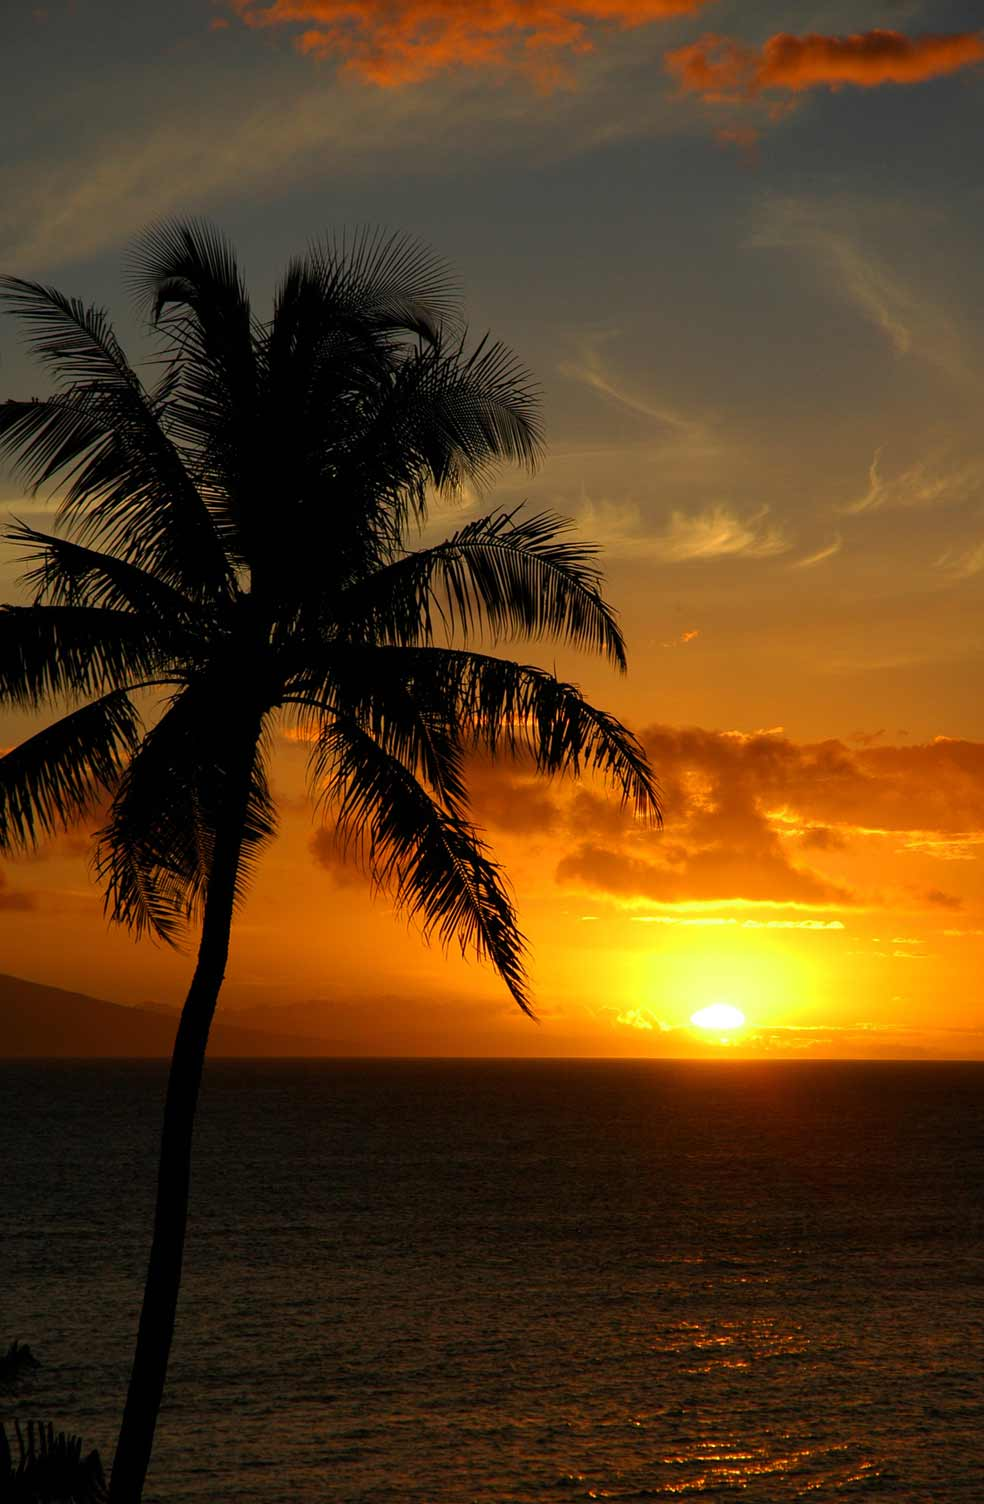 Enjoy picture-perfect sunsets at Napili Bay, Maui.